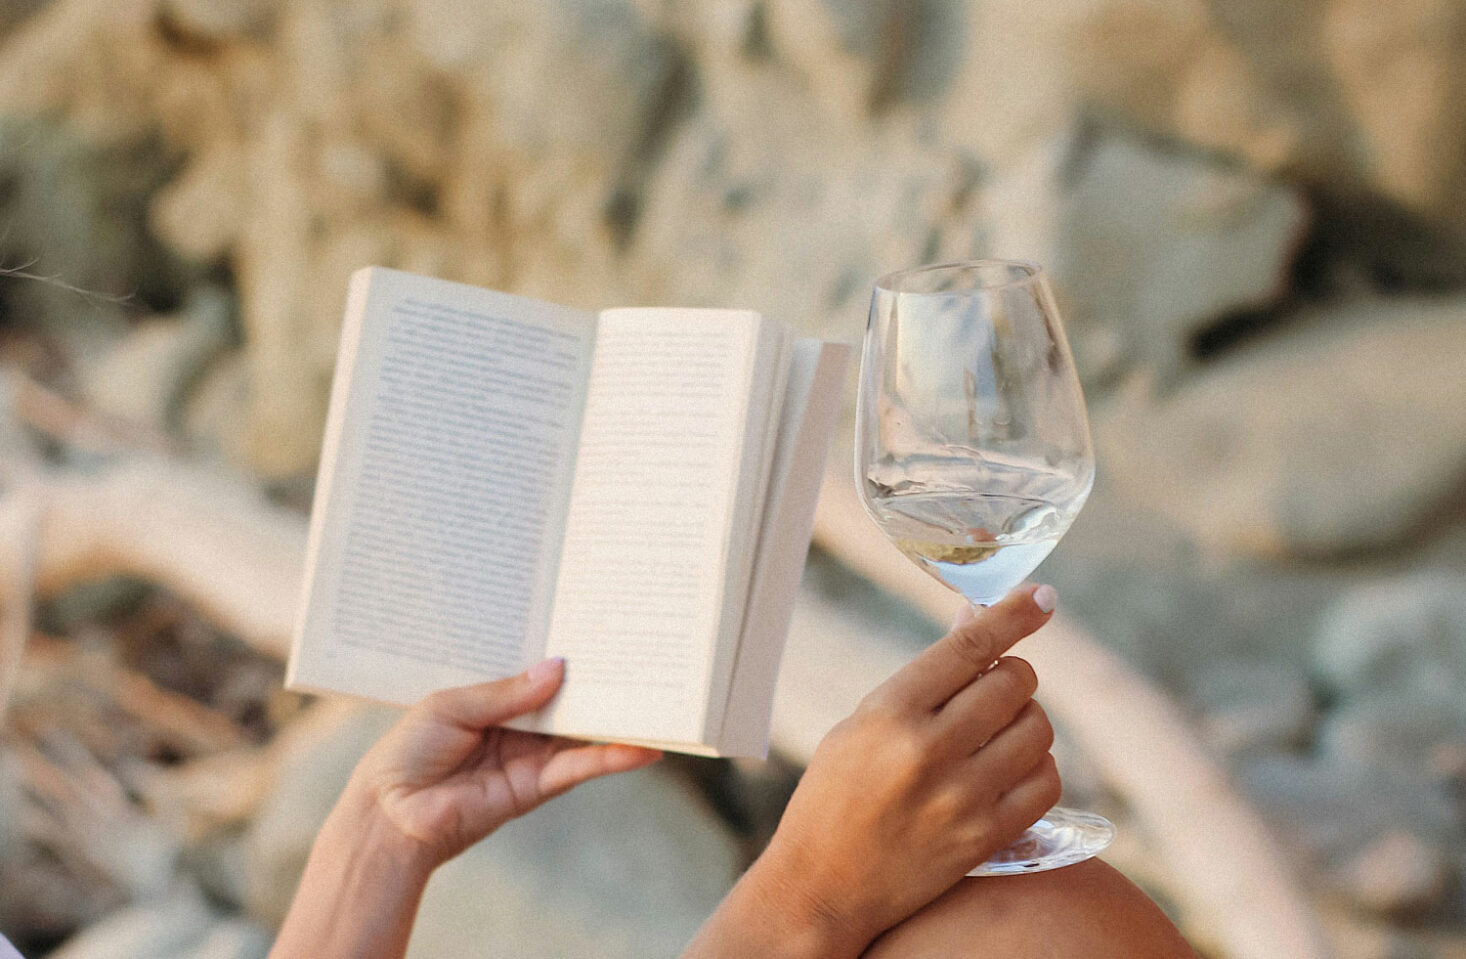 Book Tips from the Community to change your perspective on life | Evano Magazine